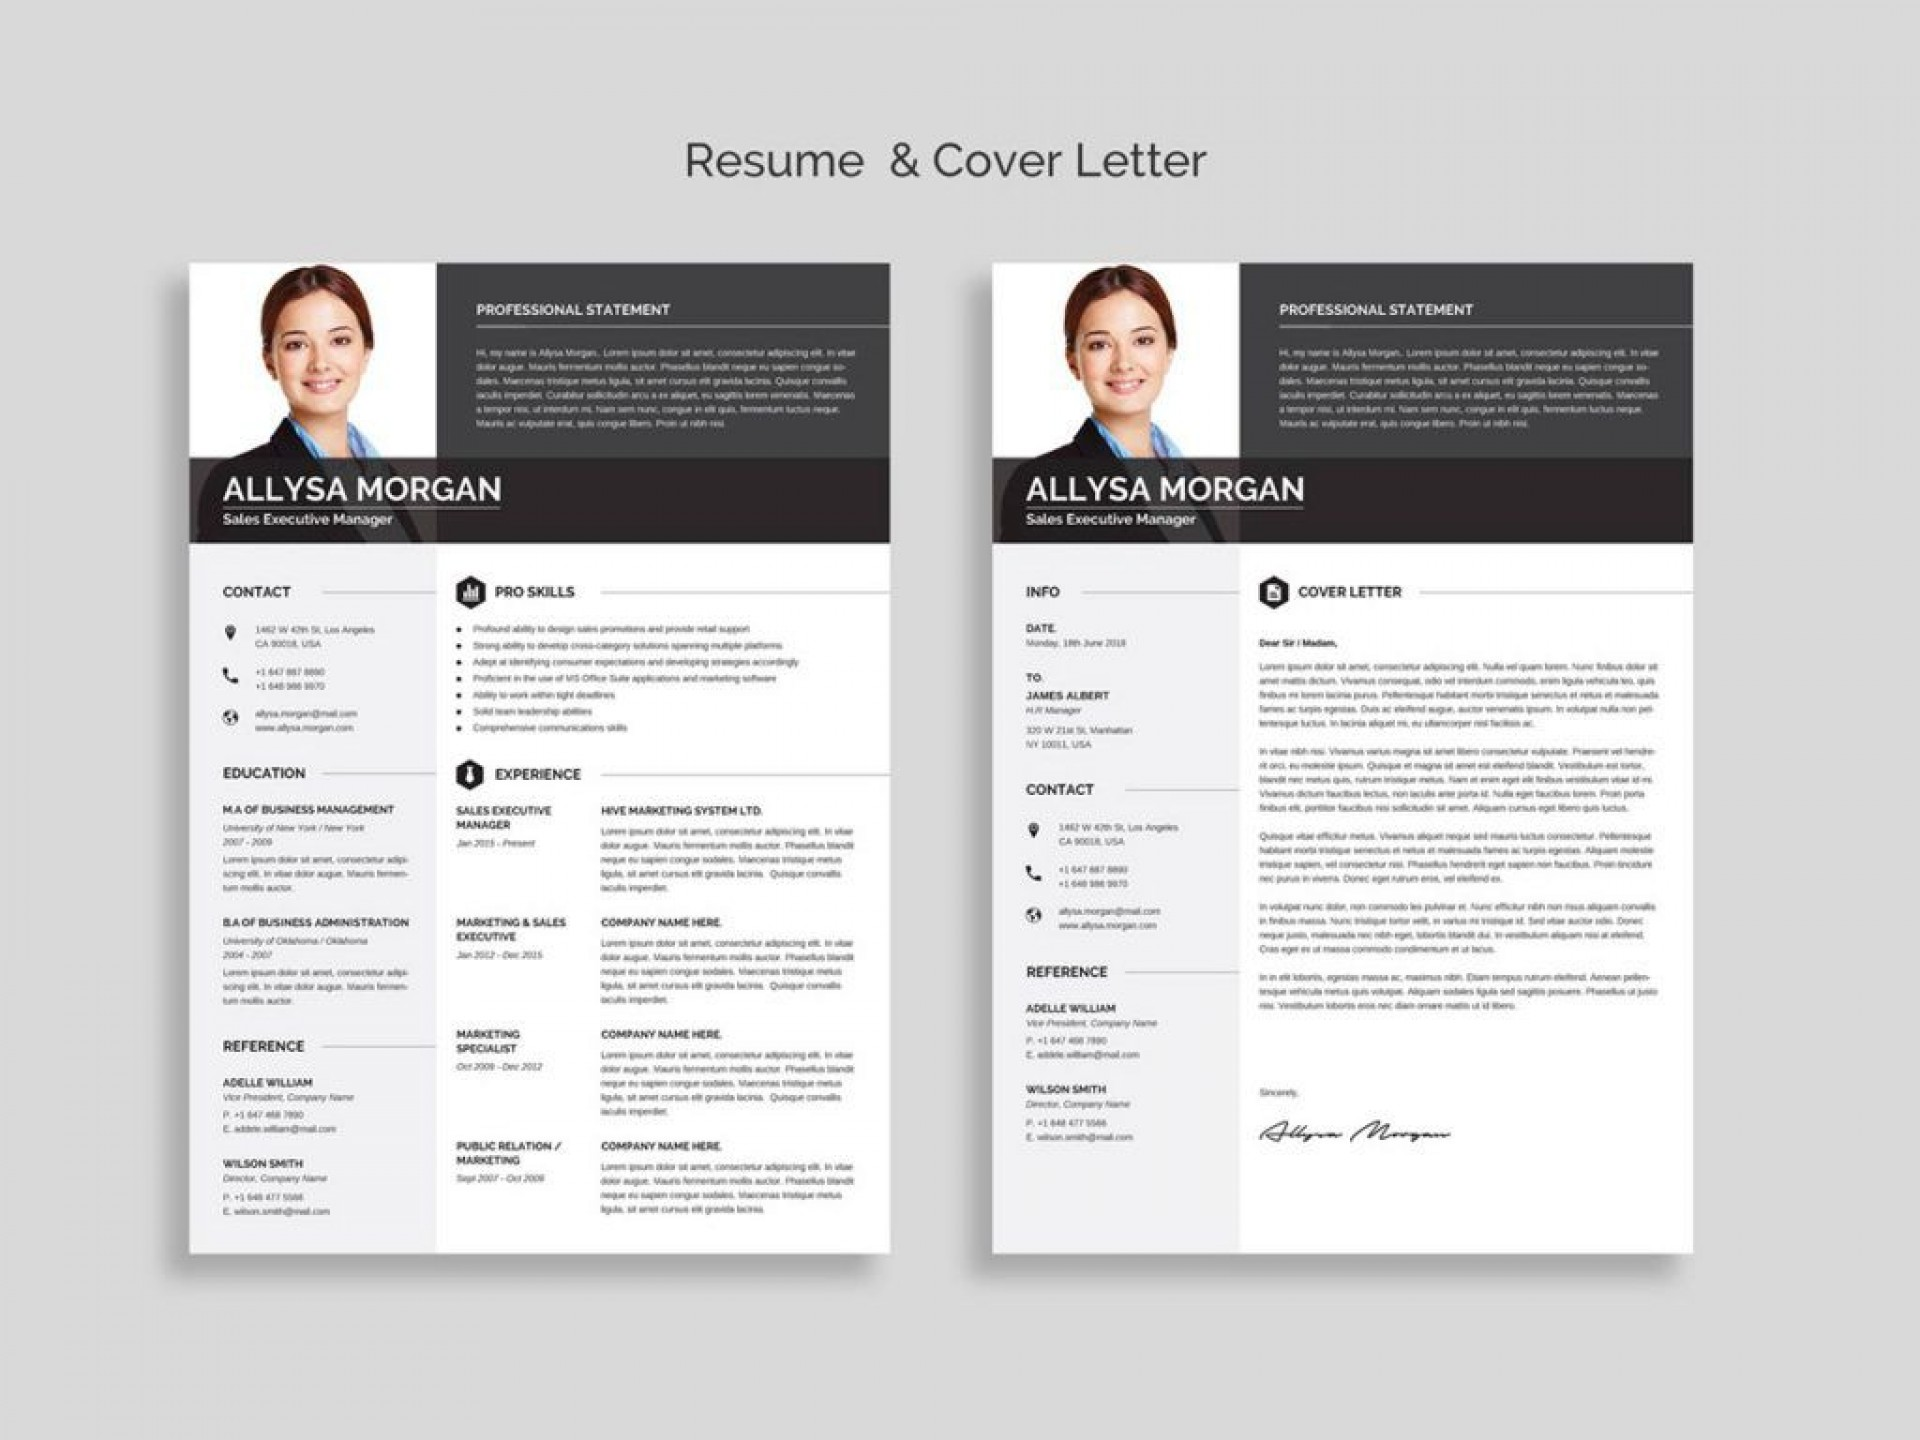 008 Beautiful Word Resume Template Free Photo  Fresher Format Download 2020 M1920